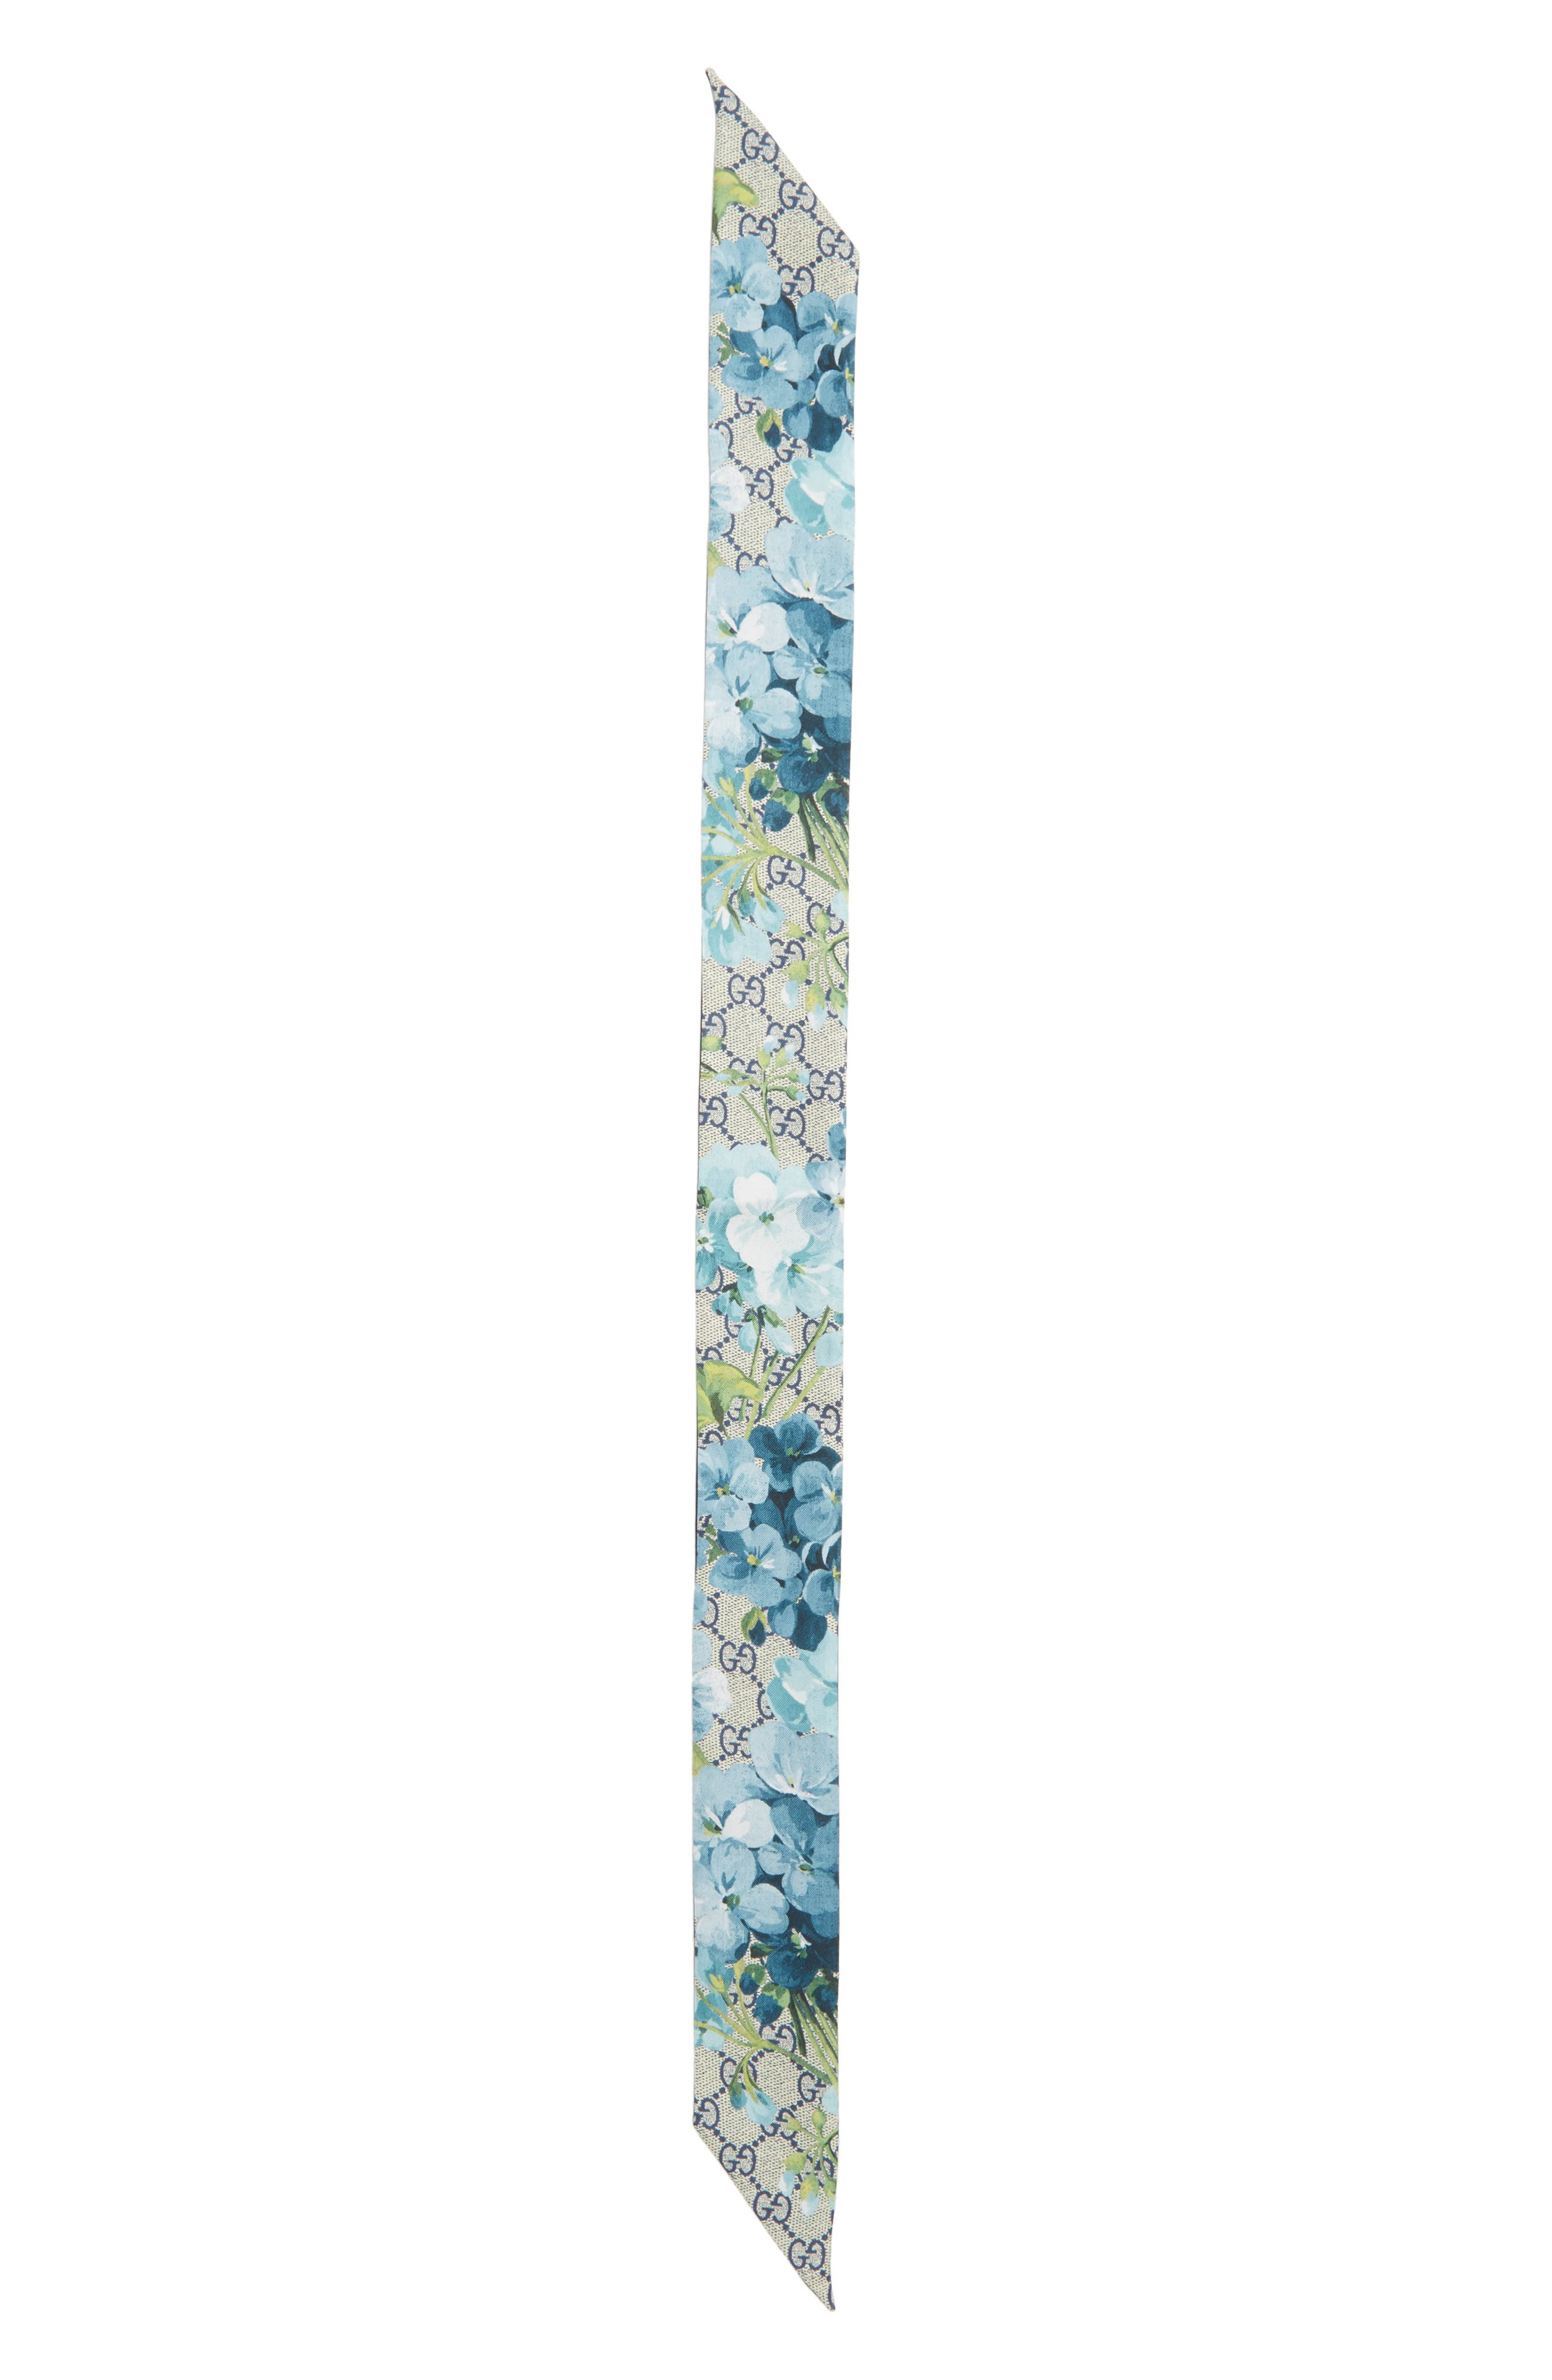 GG Blooms Skinny Scarf,                             Alternate thumbnail 2, color,